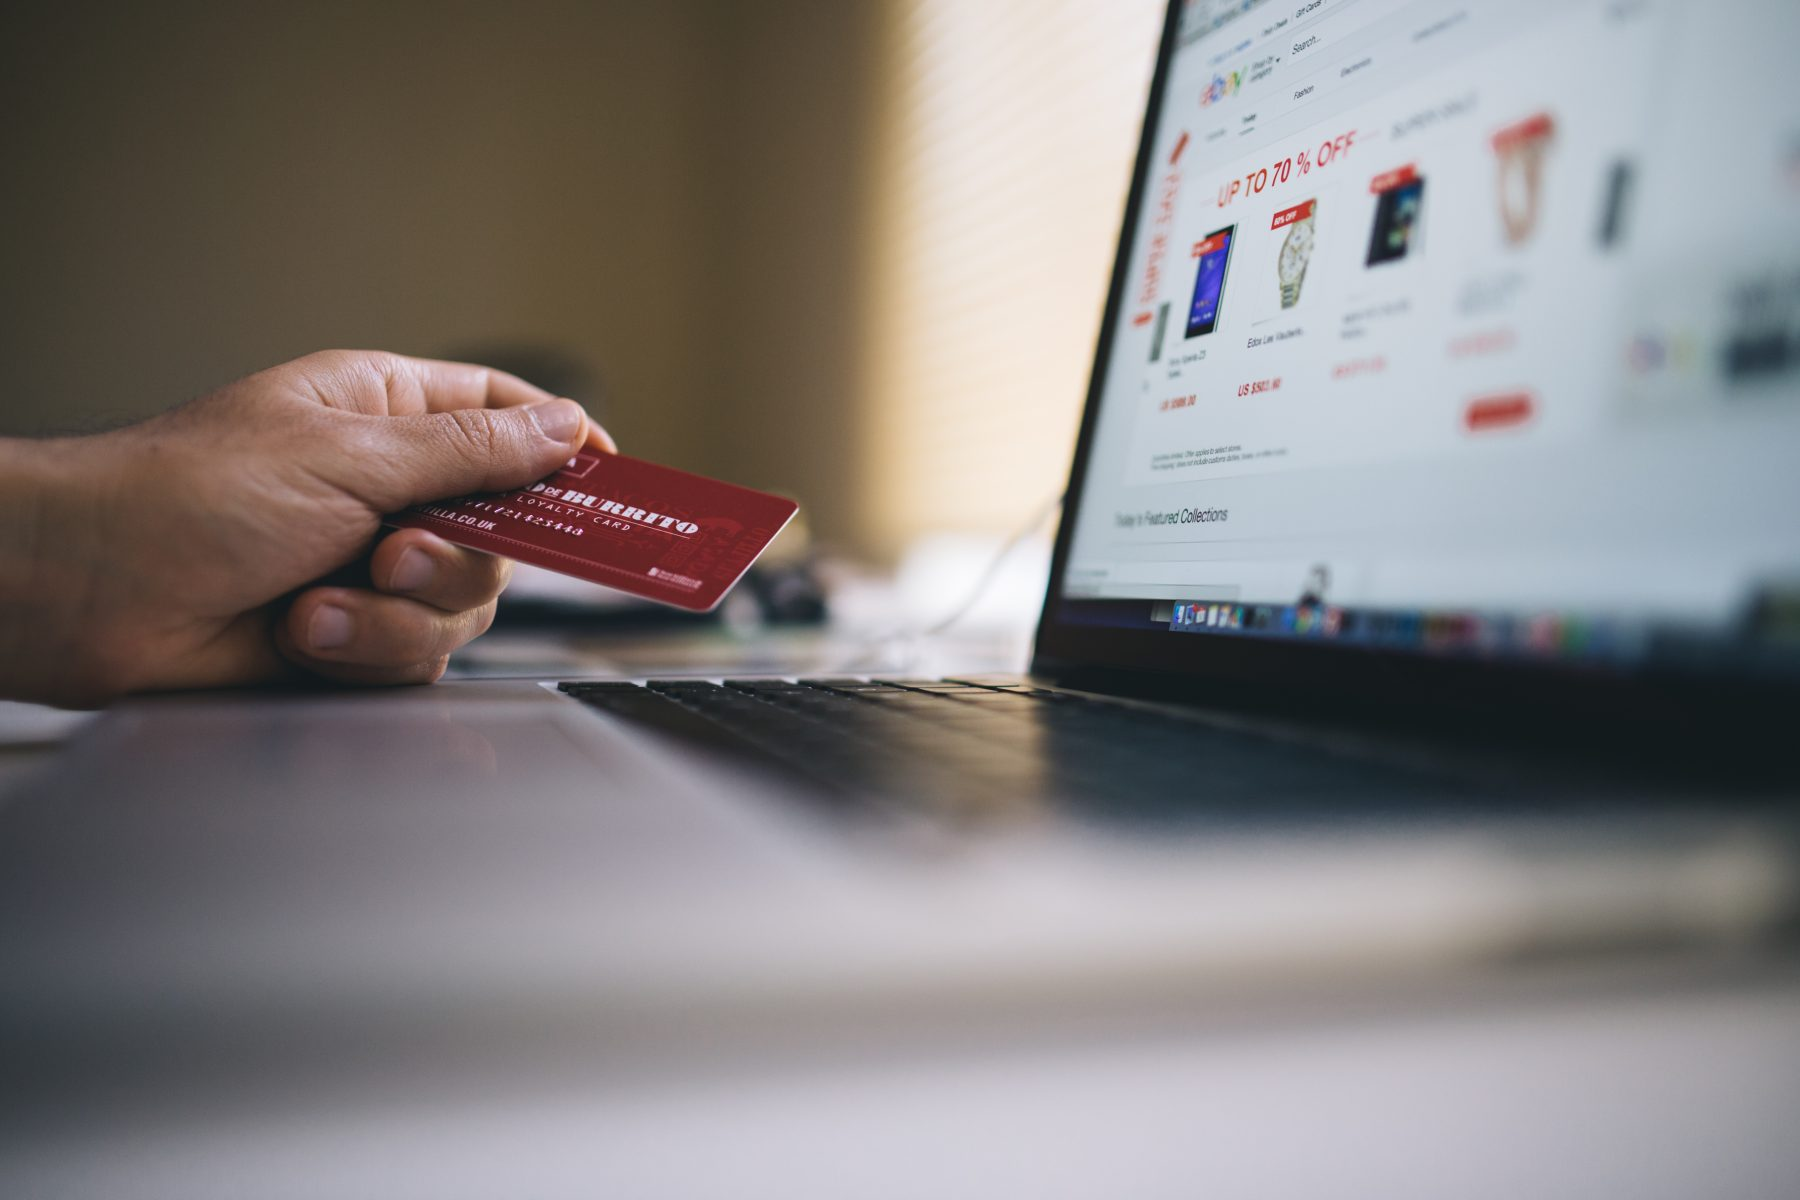 4 Proven Shopify Hacks to Quickly Boost Store Sales